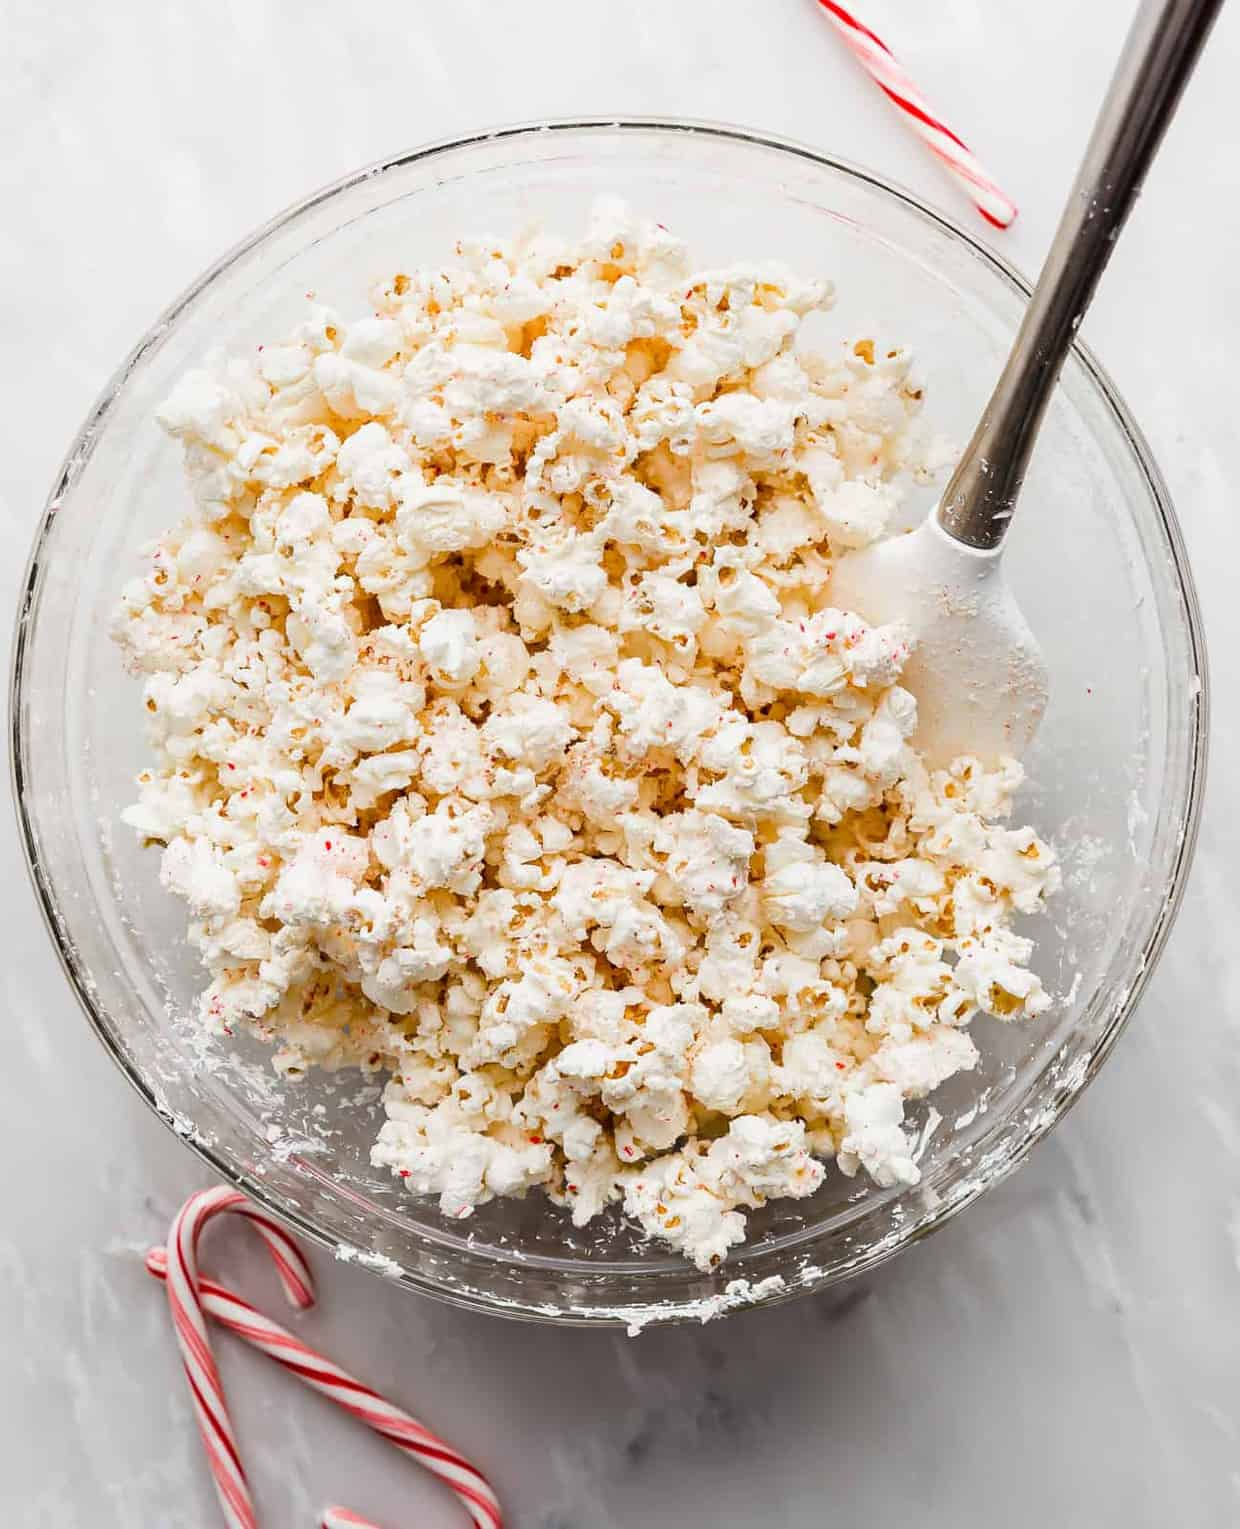 A large glass bowl full of popped popcorn covered in white chocolate and crushed candy canes.